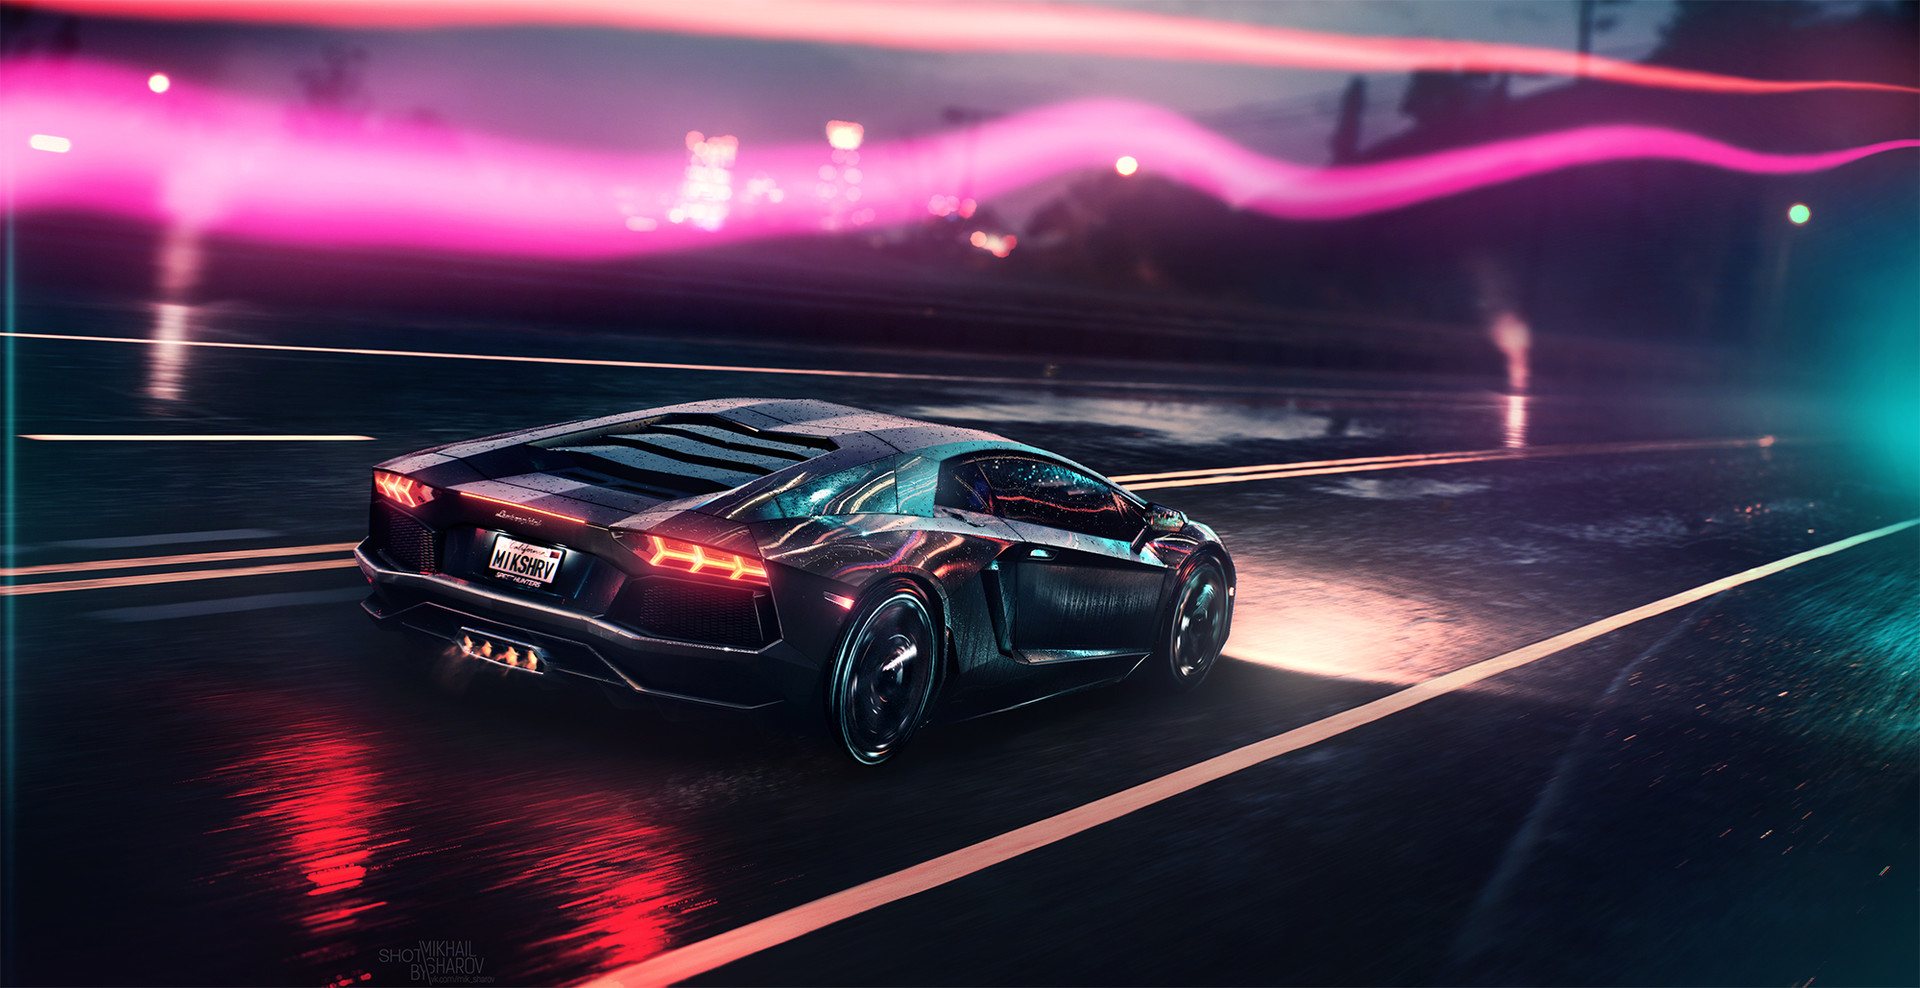 Neon Car Wallpaper 4k